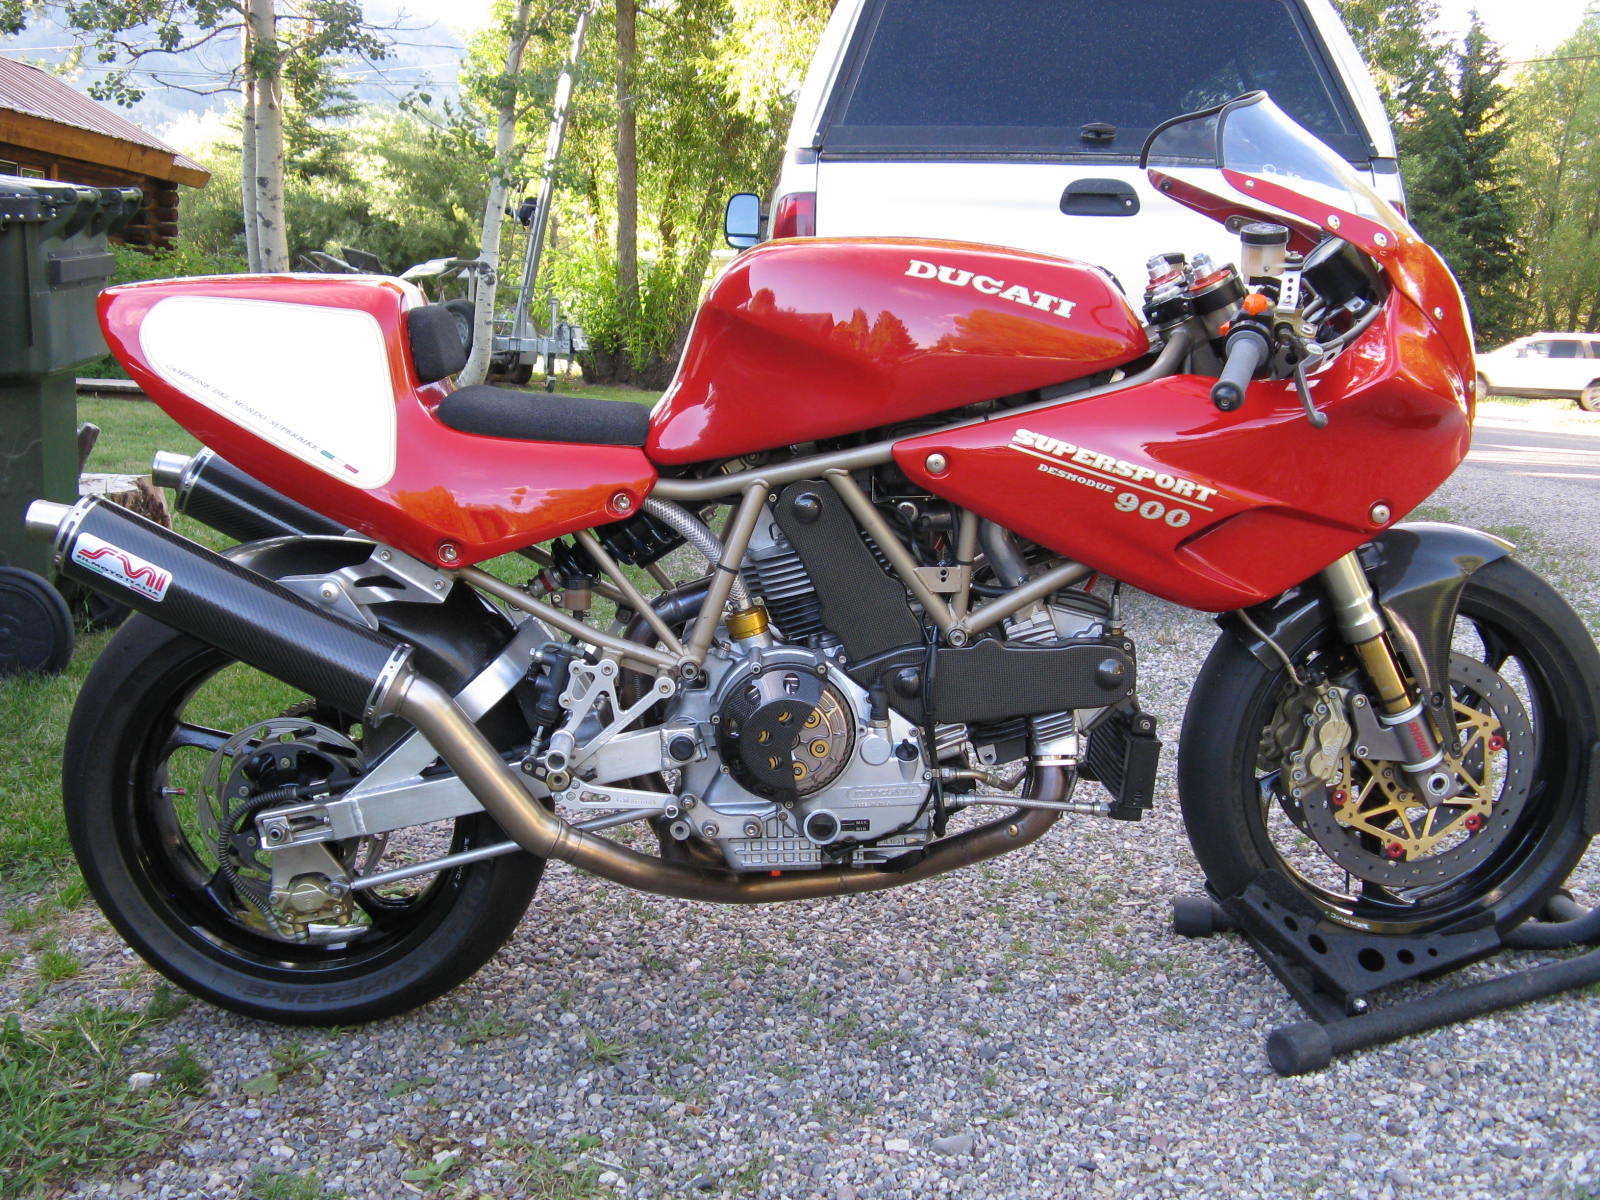 Ducati 900 SS 1997 images #79027